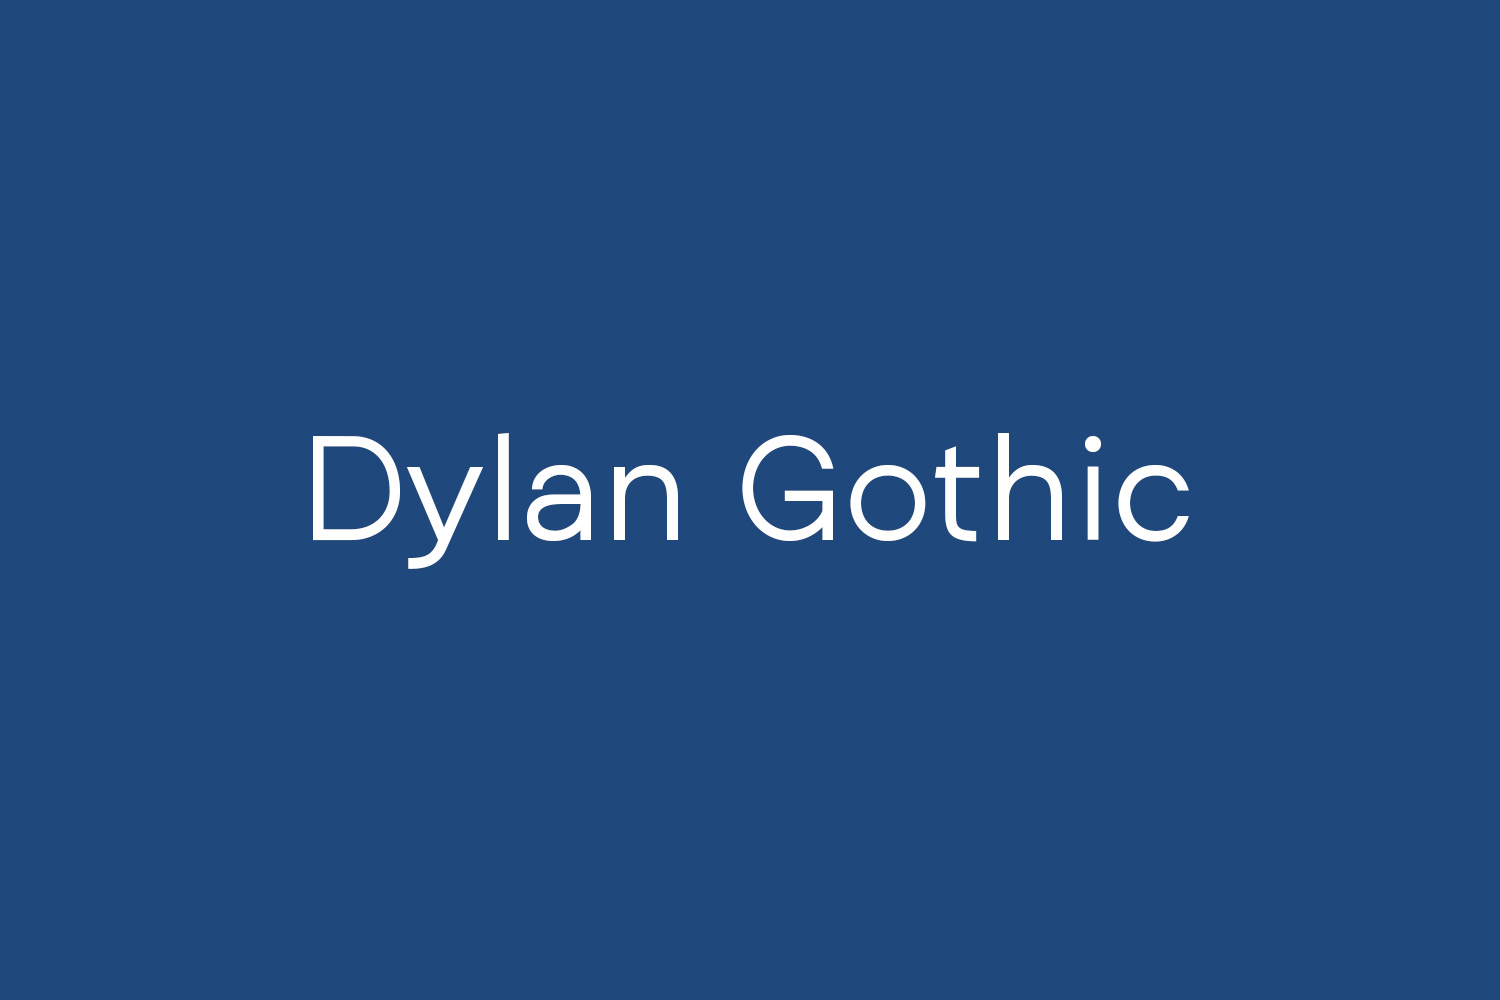 Dylan Gothic Free Font